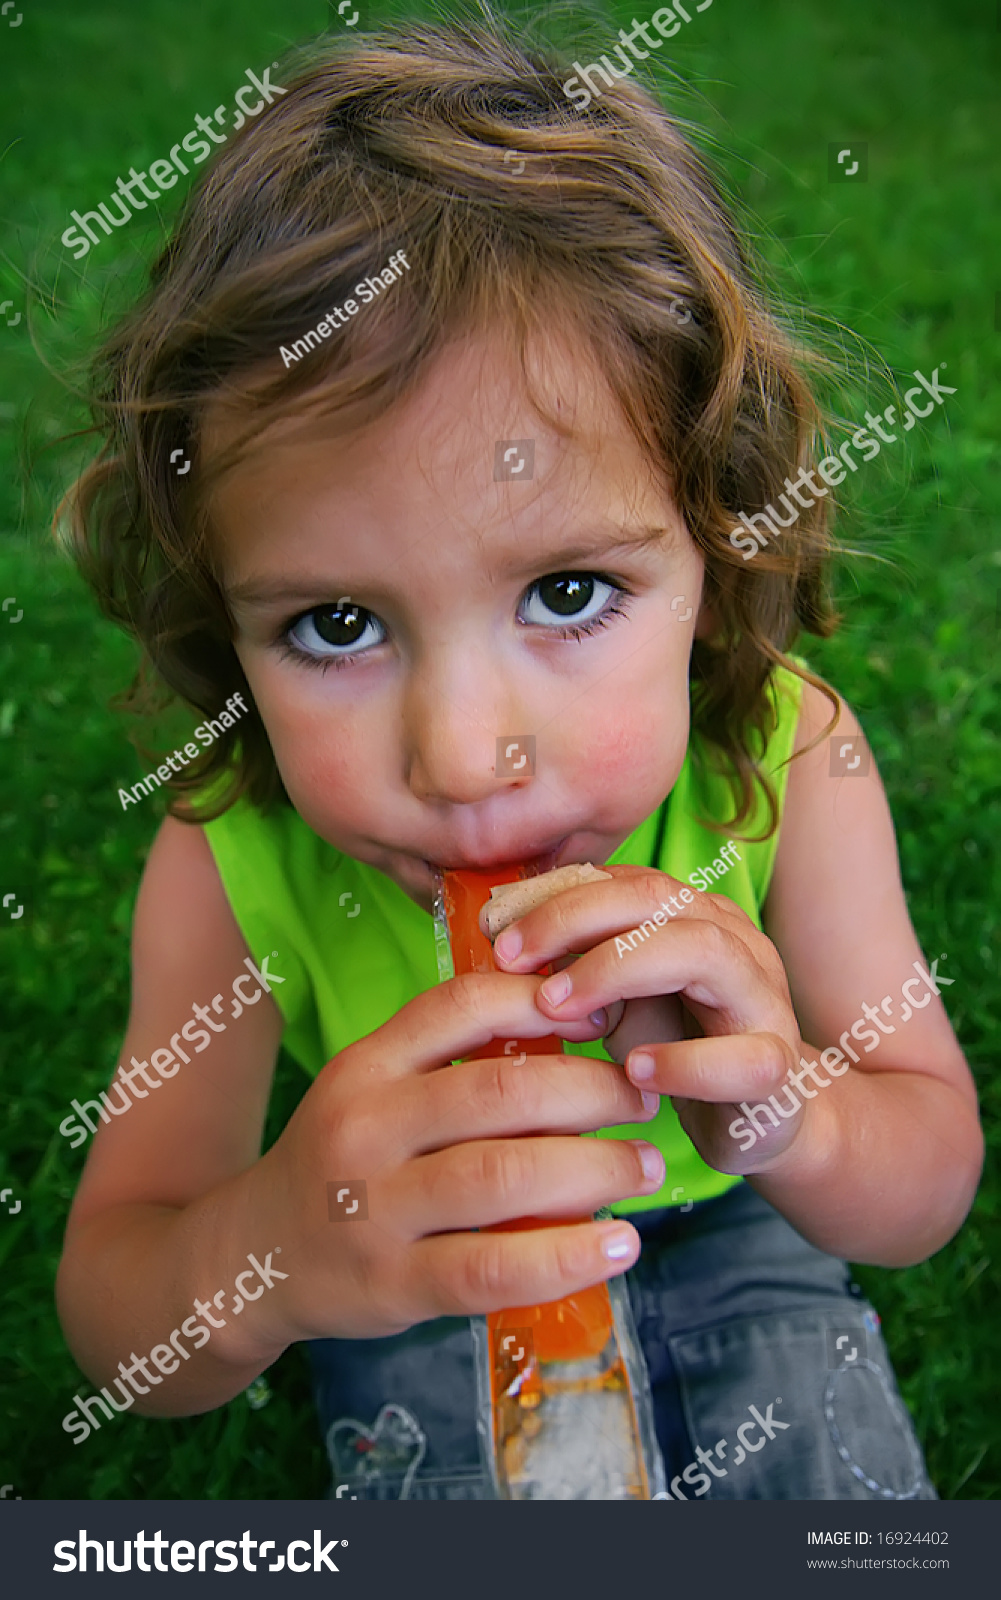 A Little Girls Eating Popsicle In The Grass